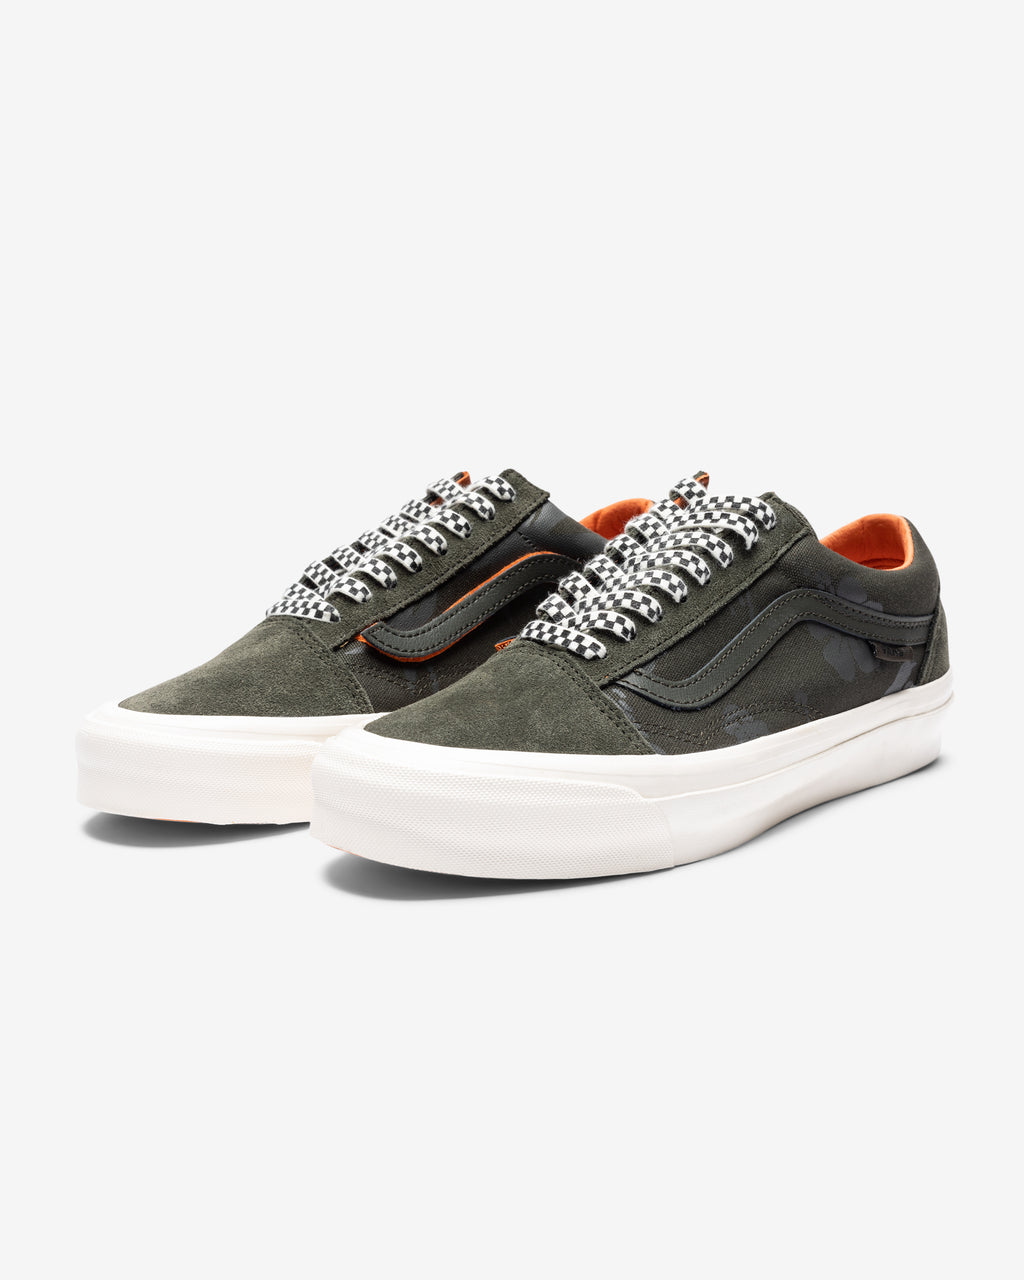 VANS X PORTER OG OLD SKOOL LX - FORESTNIGHT/ BLACKINK